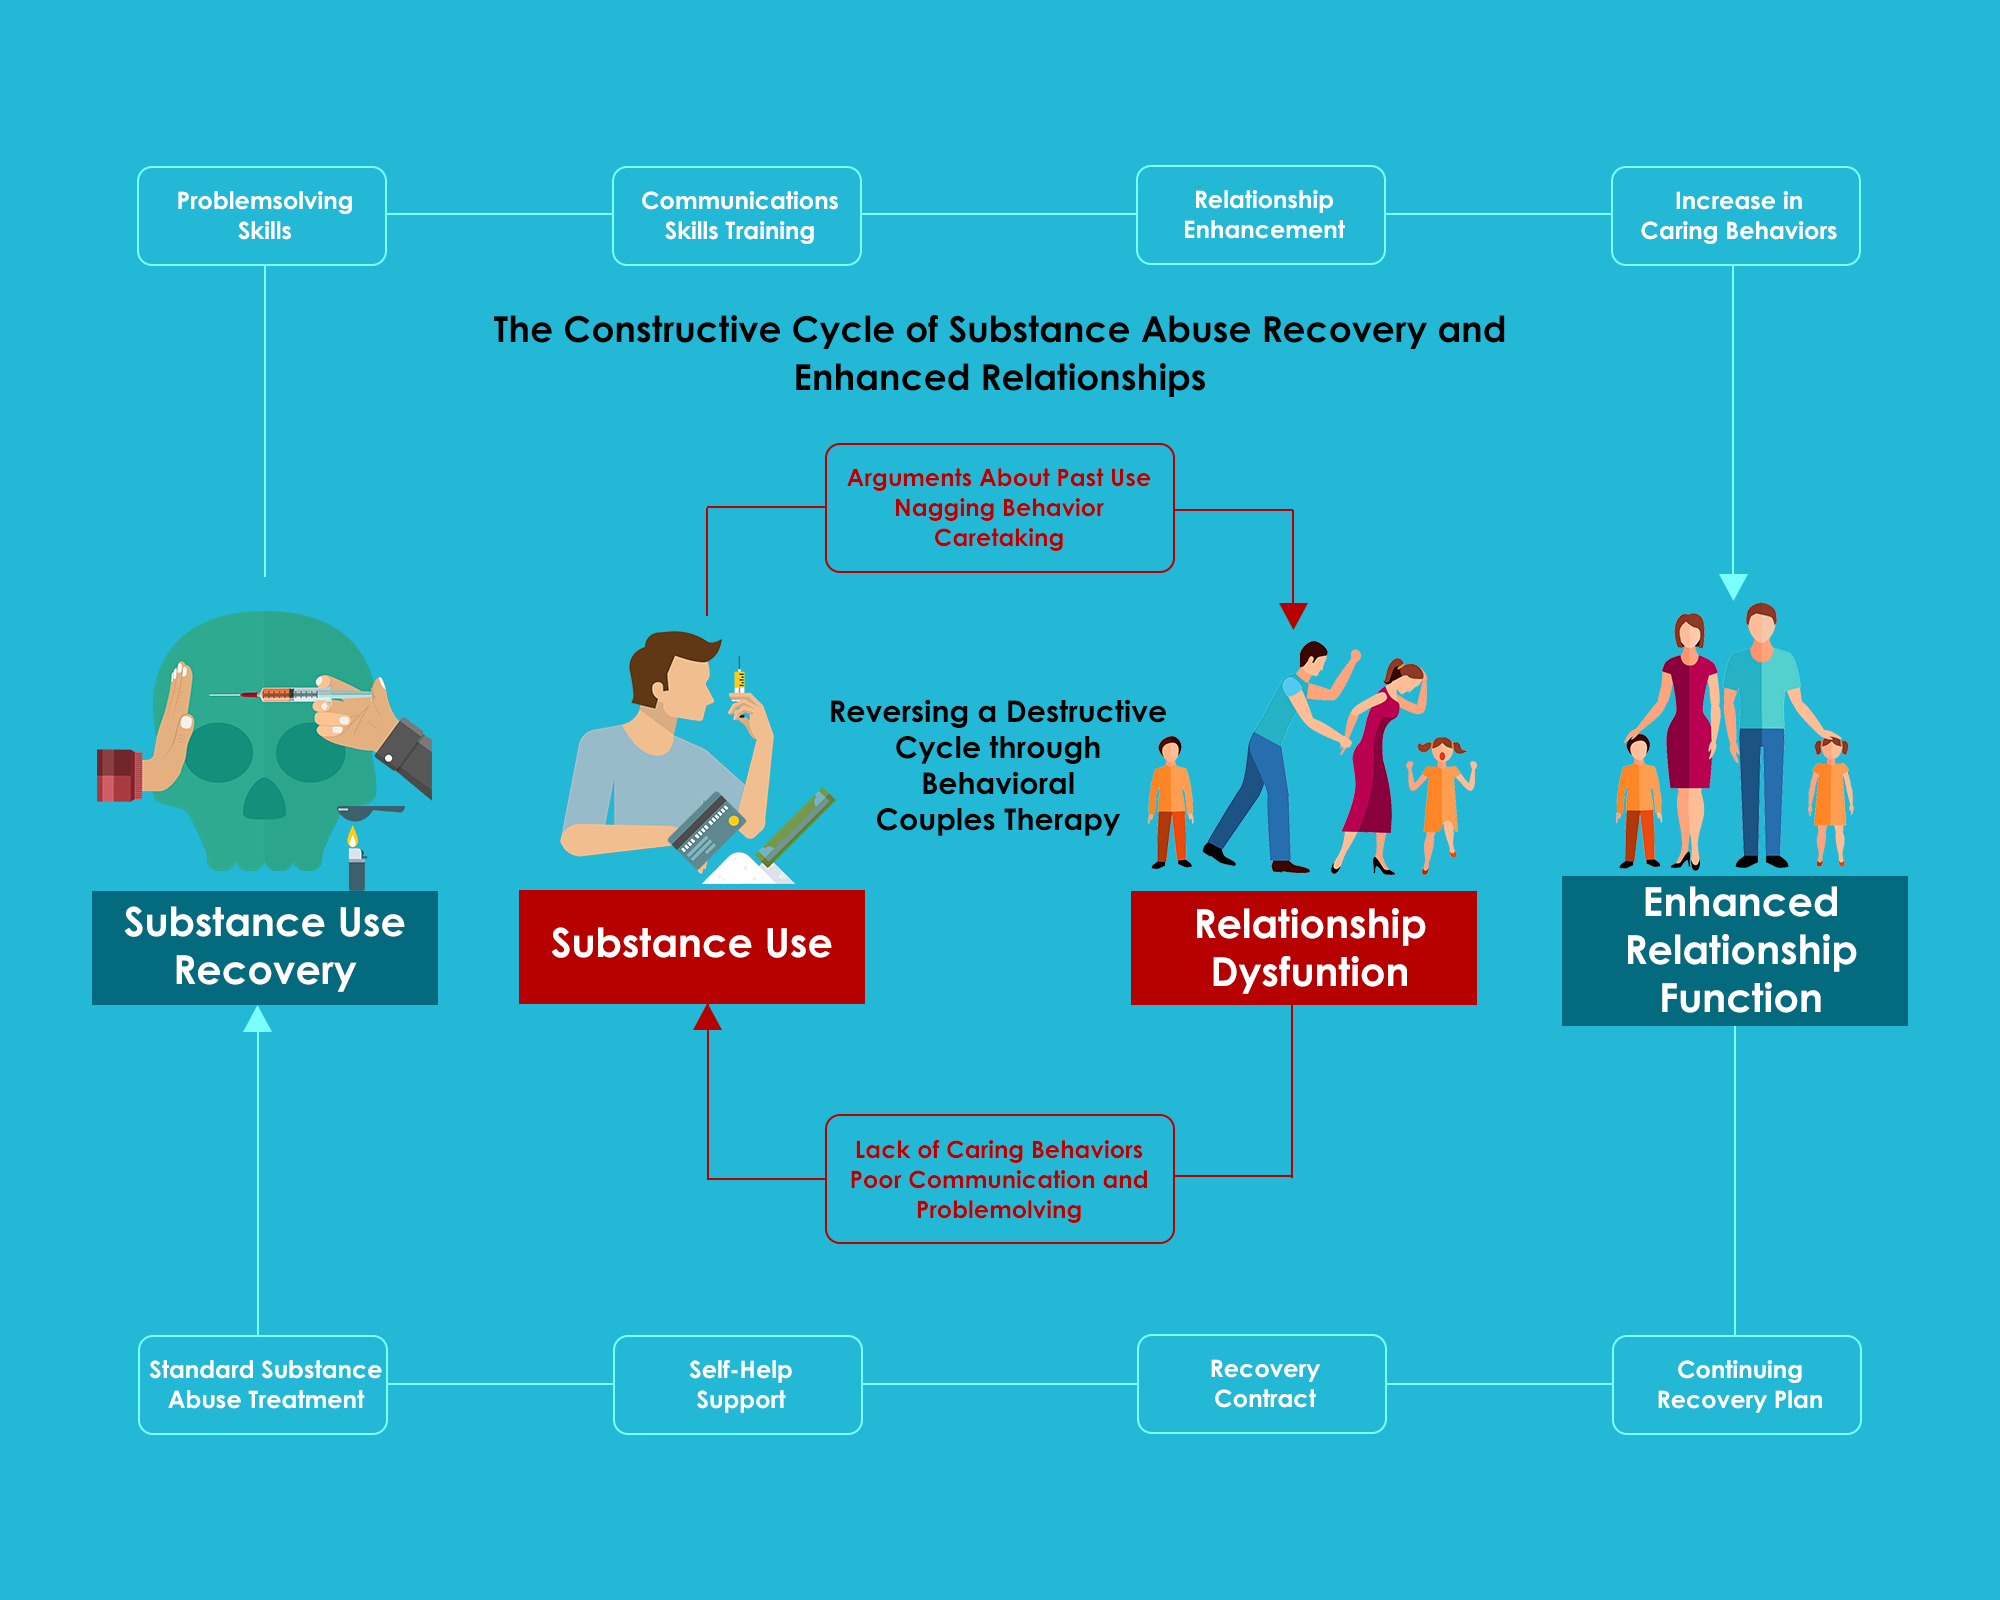 The Constructive Cycle of Substance Abuse Recovery and Enhanced Relationships